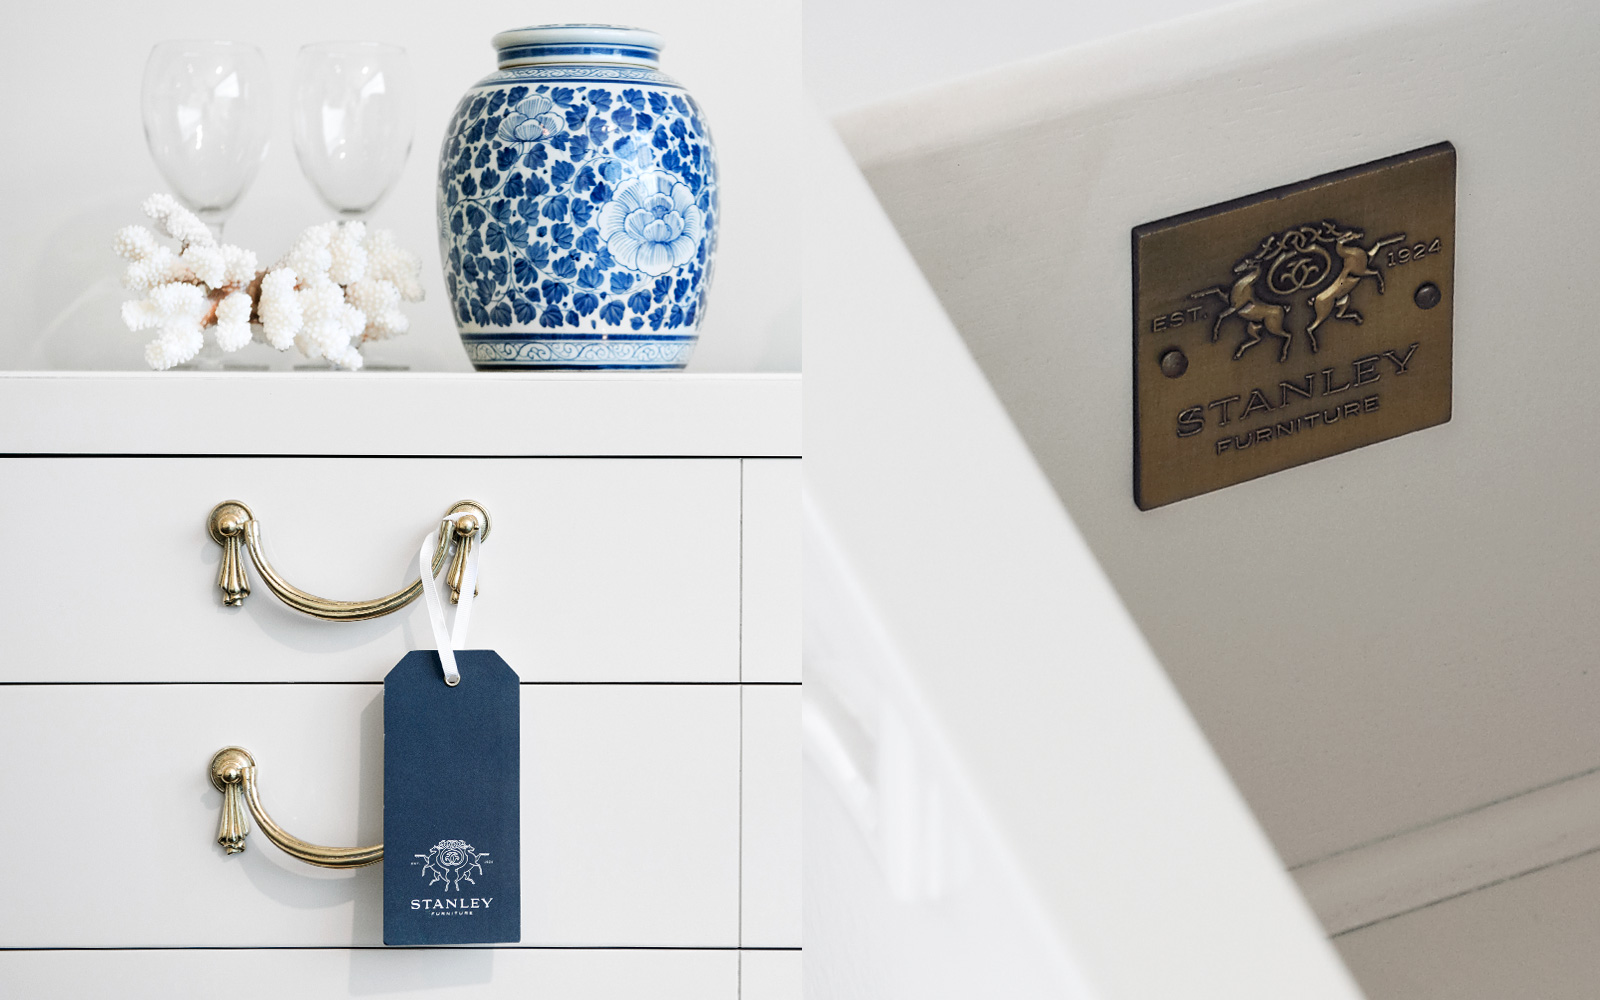 Furniture Hangtags and Brand Plates